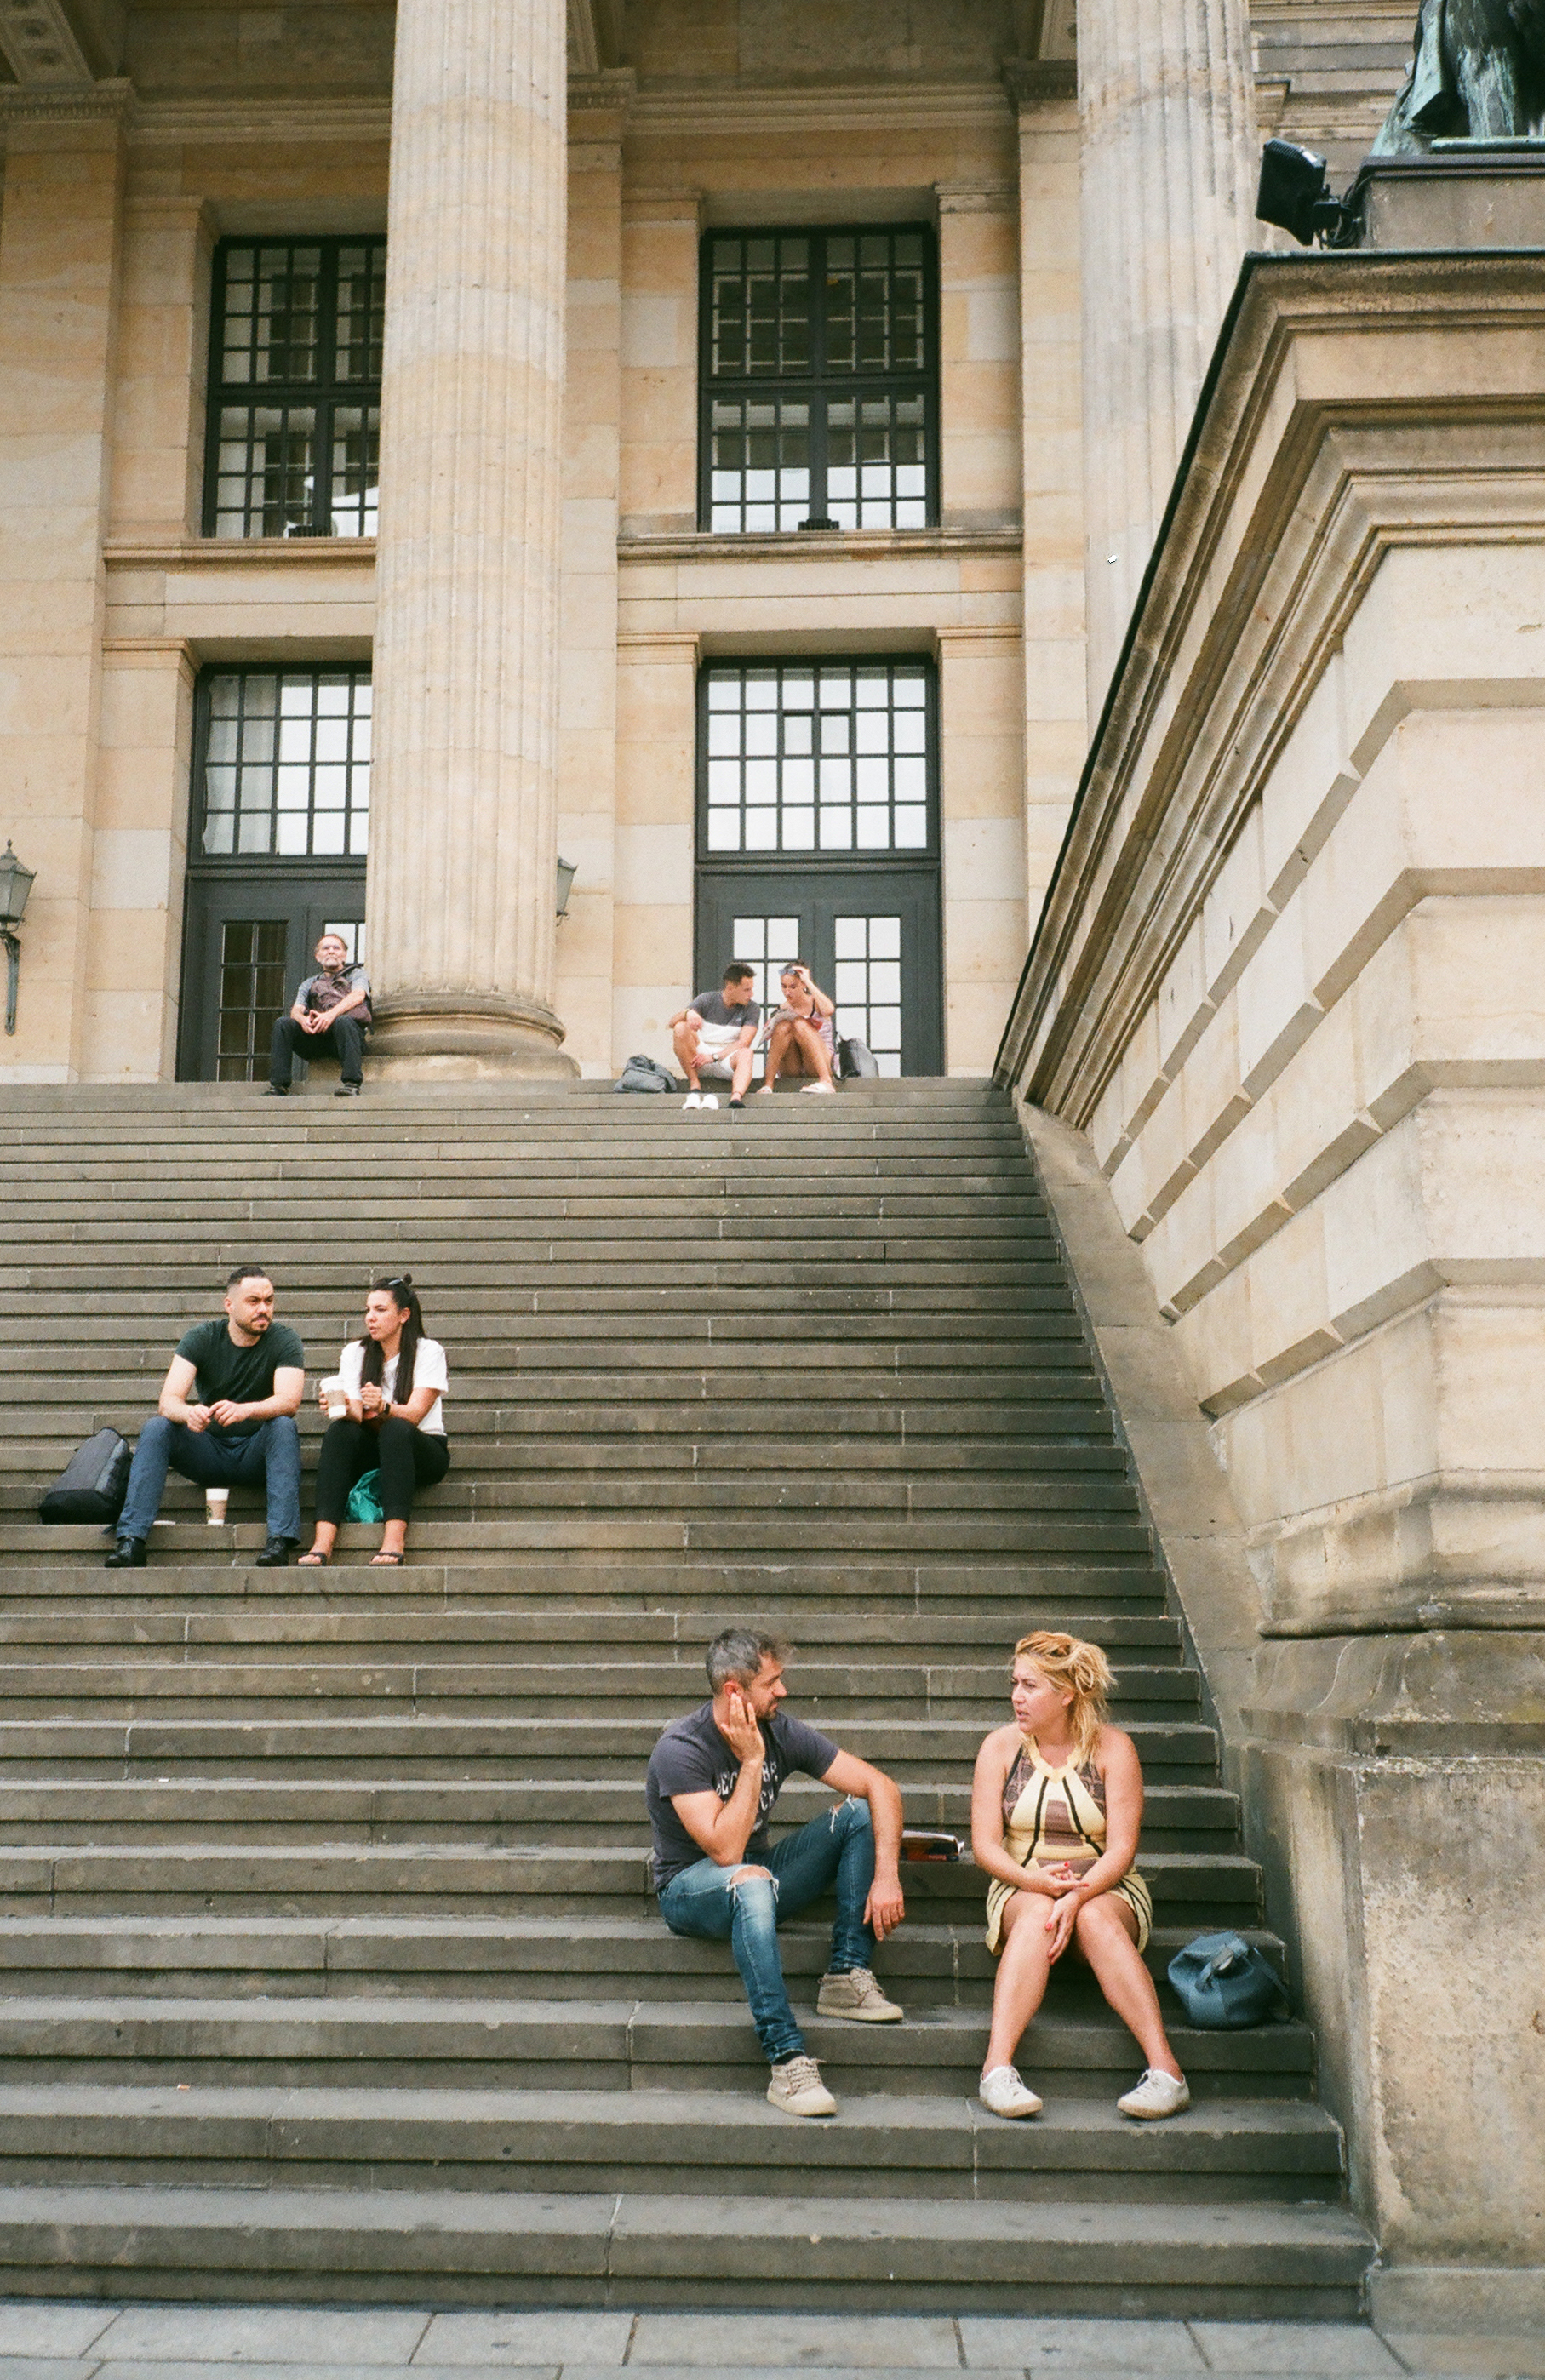 People Sitting on Stairs